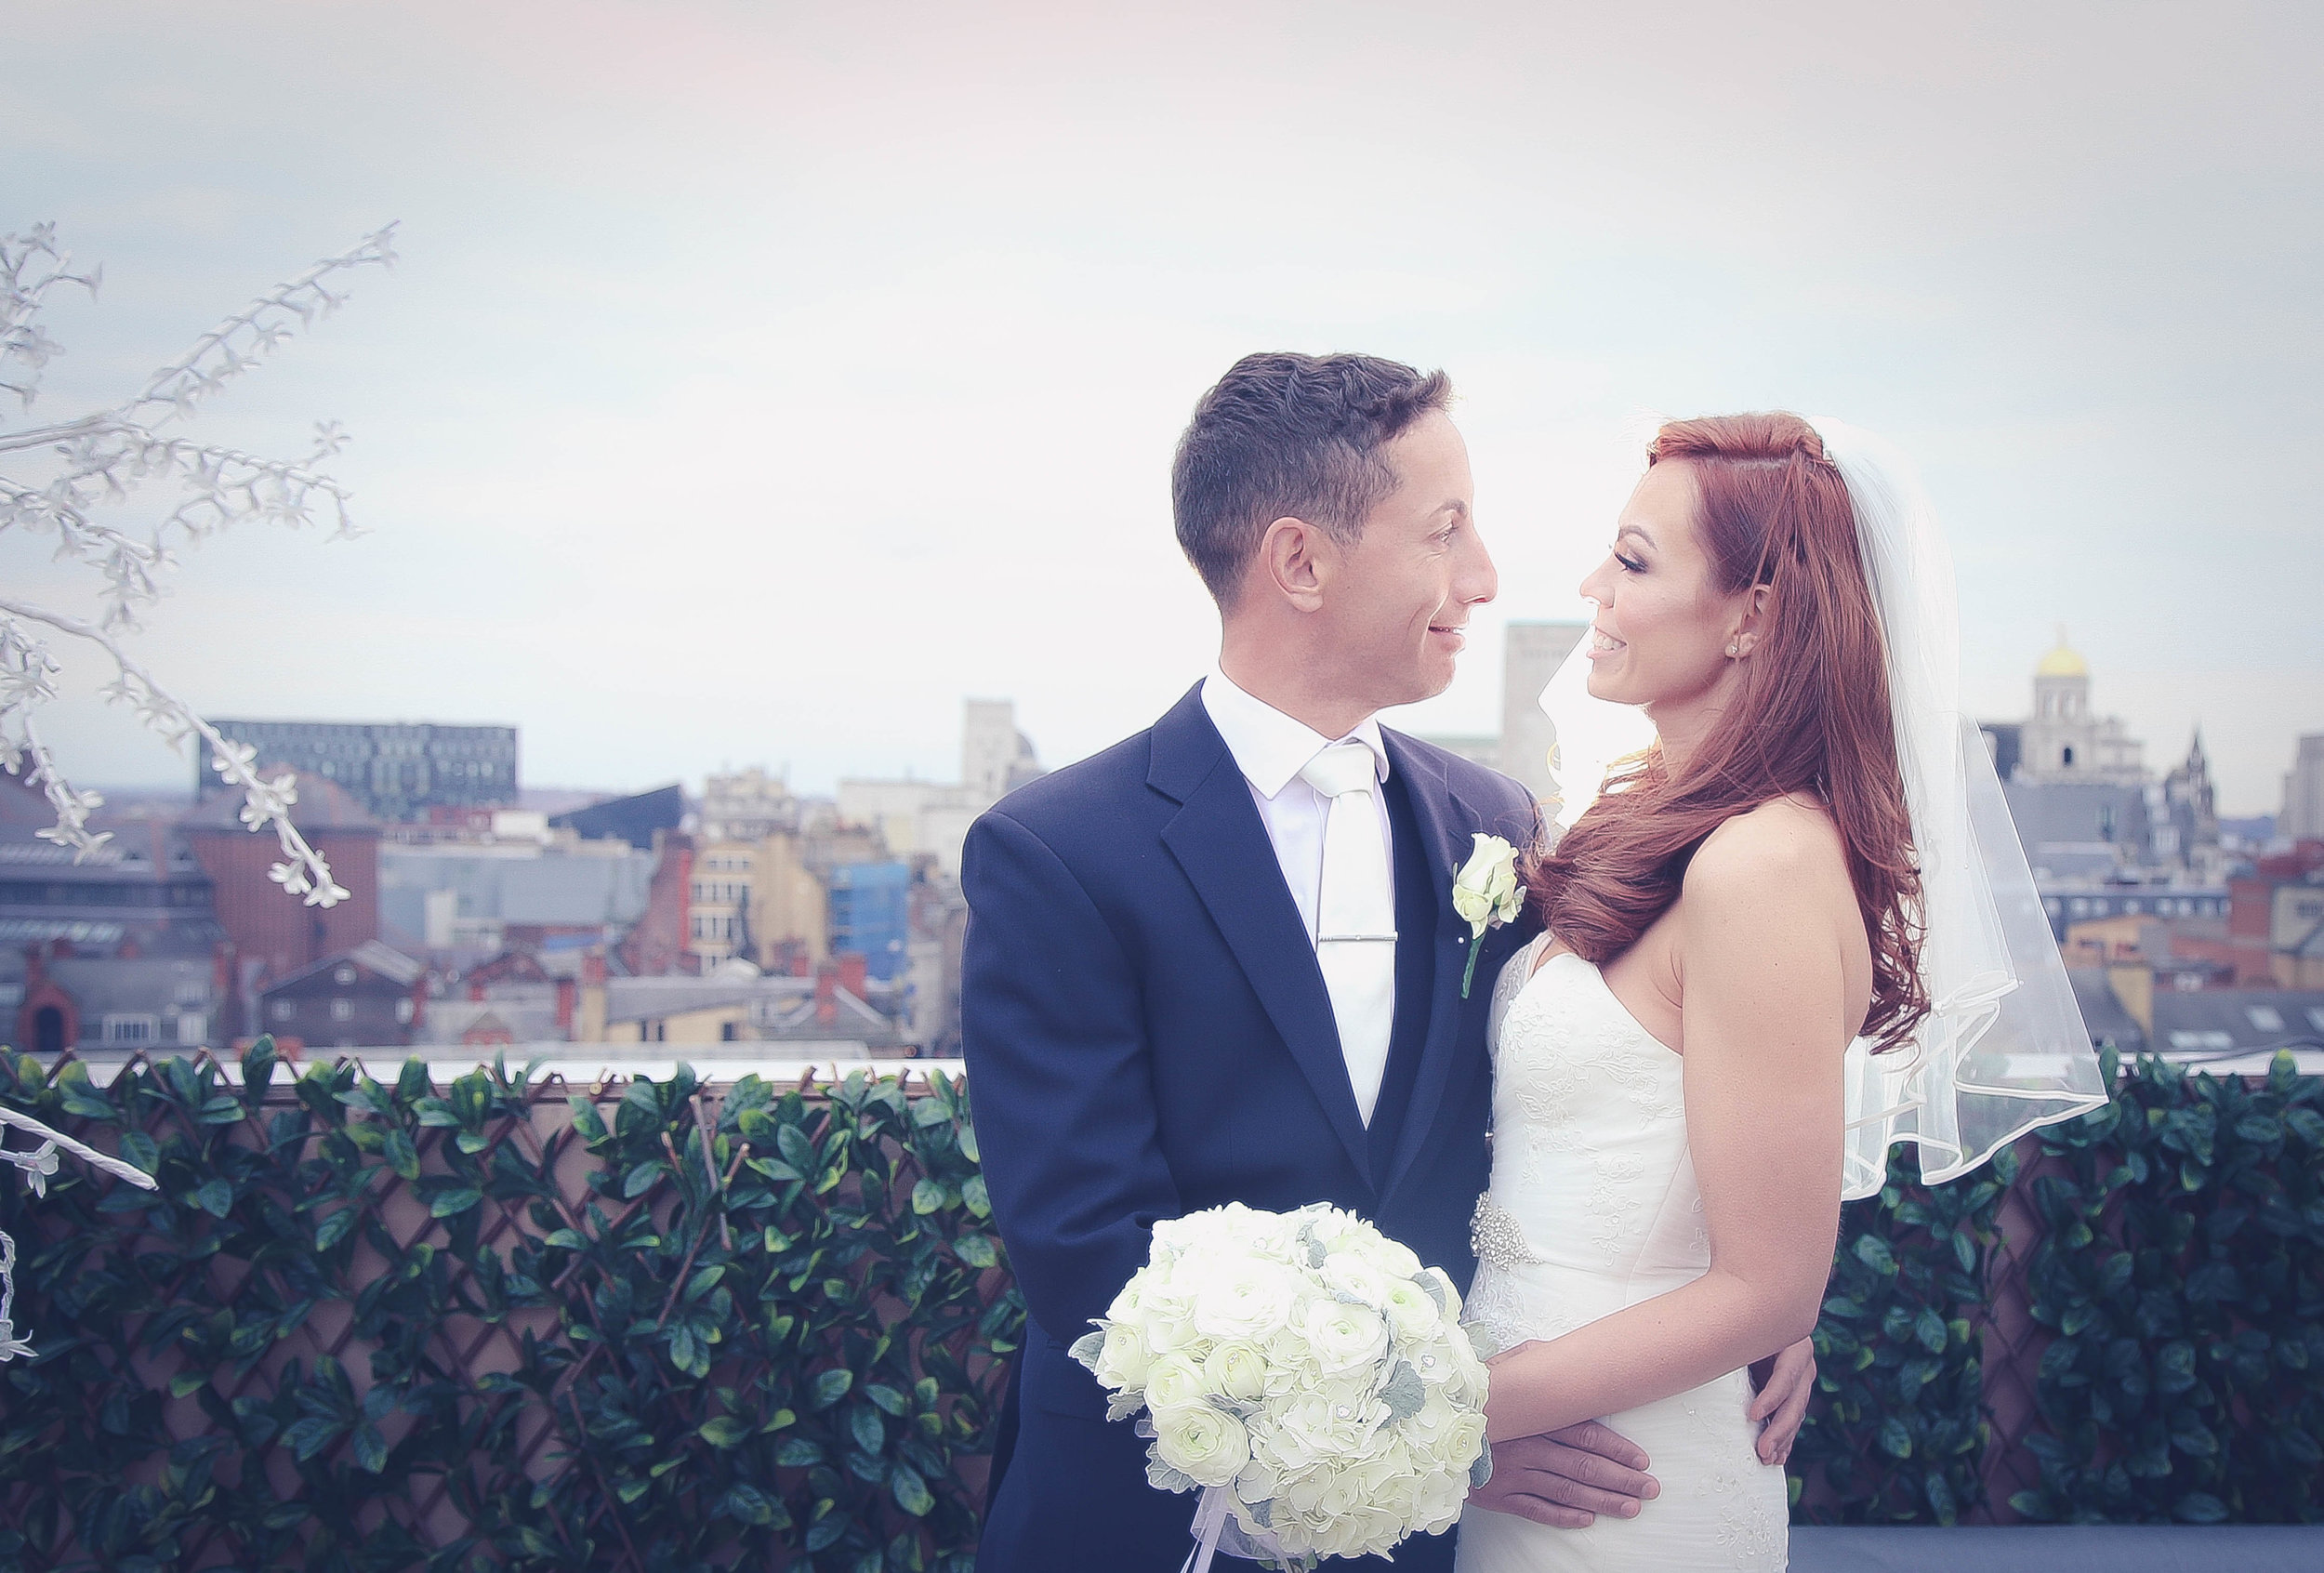 Weddings at the shankly hotel liverpool-96.jpg